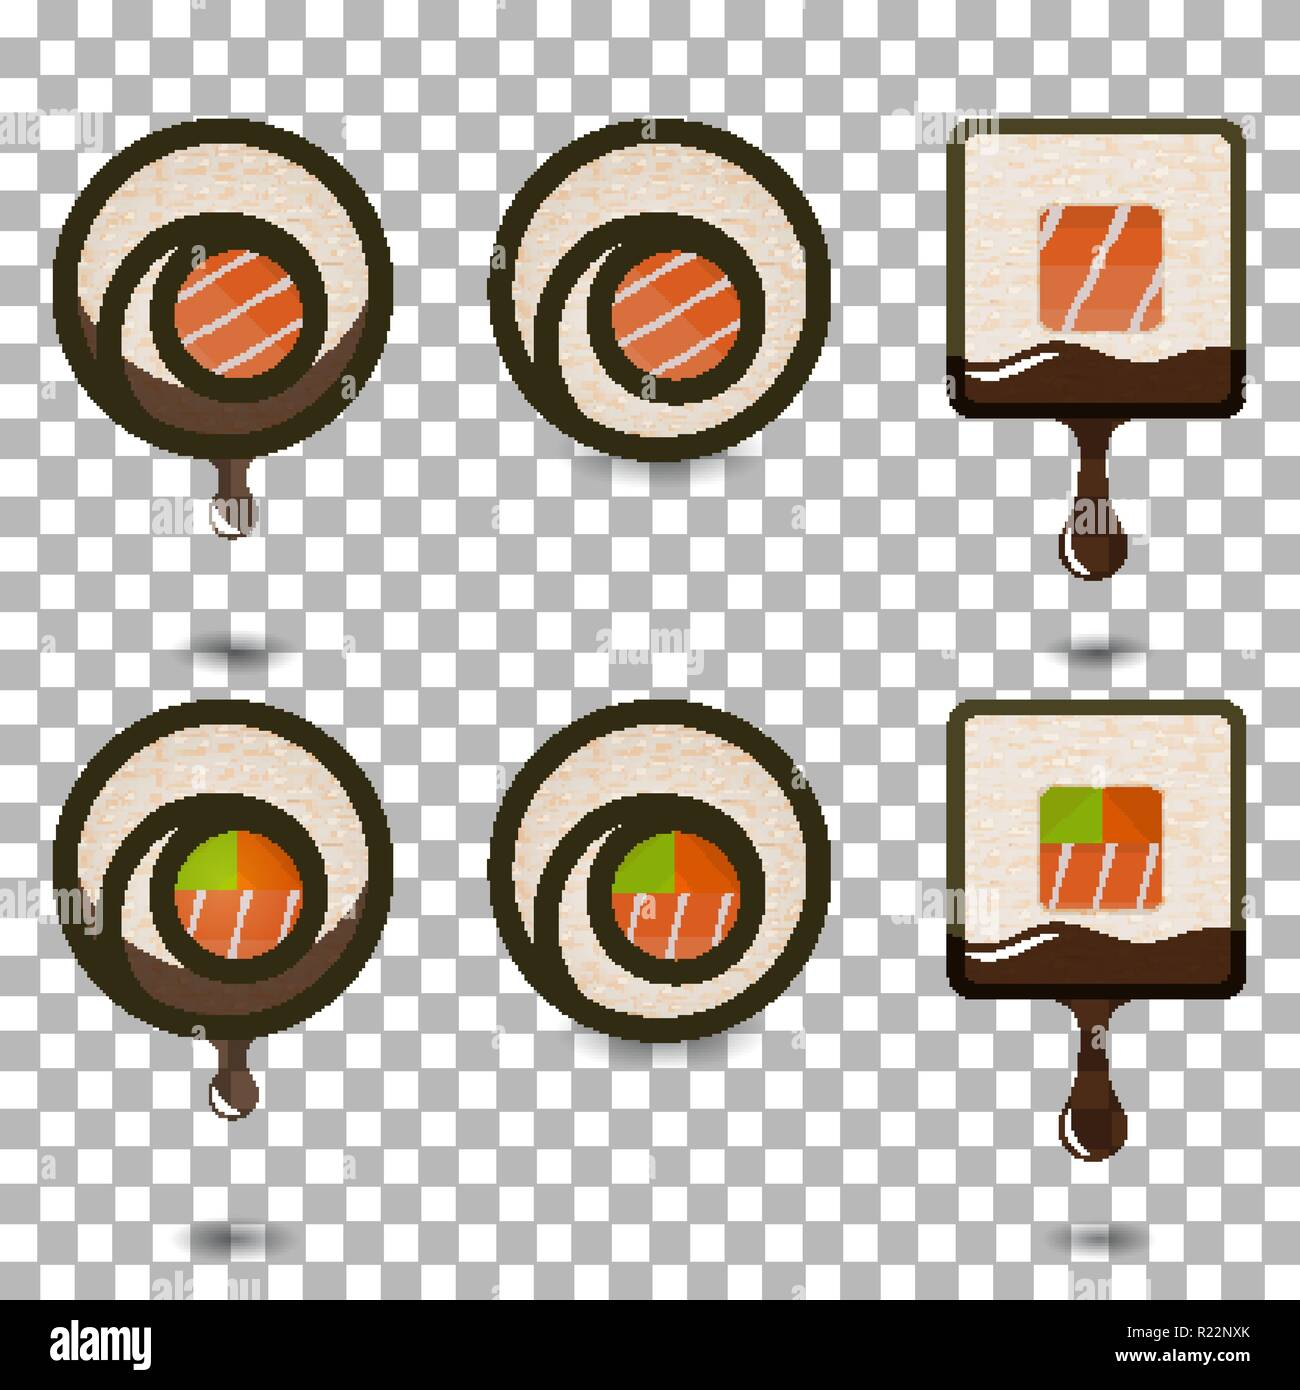 Set of 6 slices sushi rolls logotypes, traditional asian food. Classic recipes for restaurant menu, delivery websites. transparent background, resizab - Stock Image